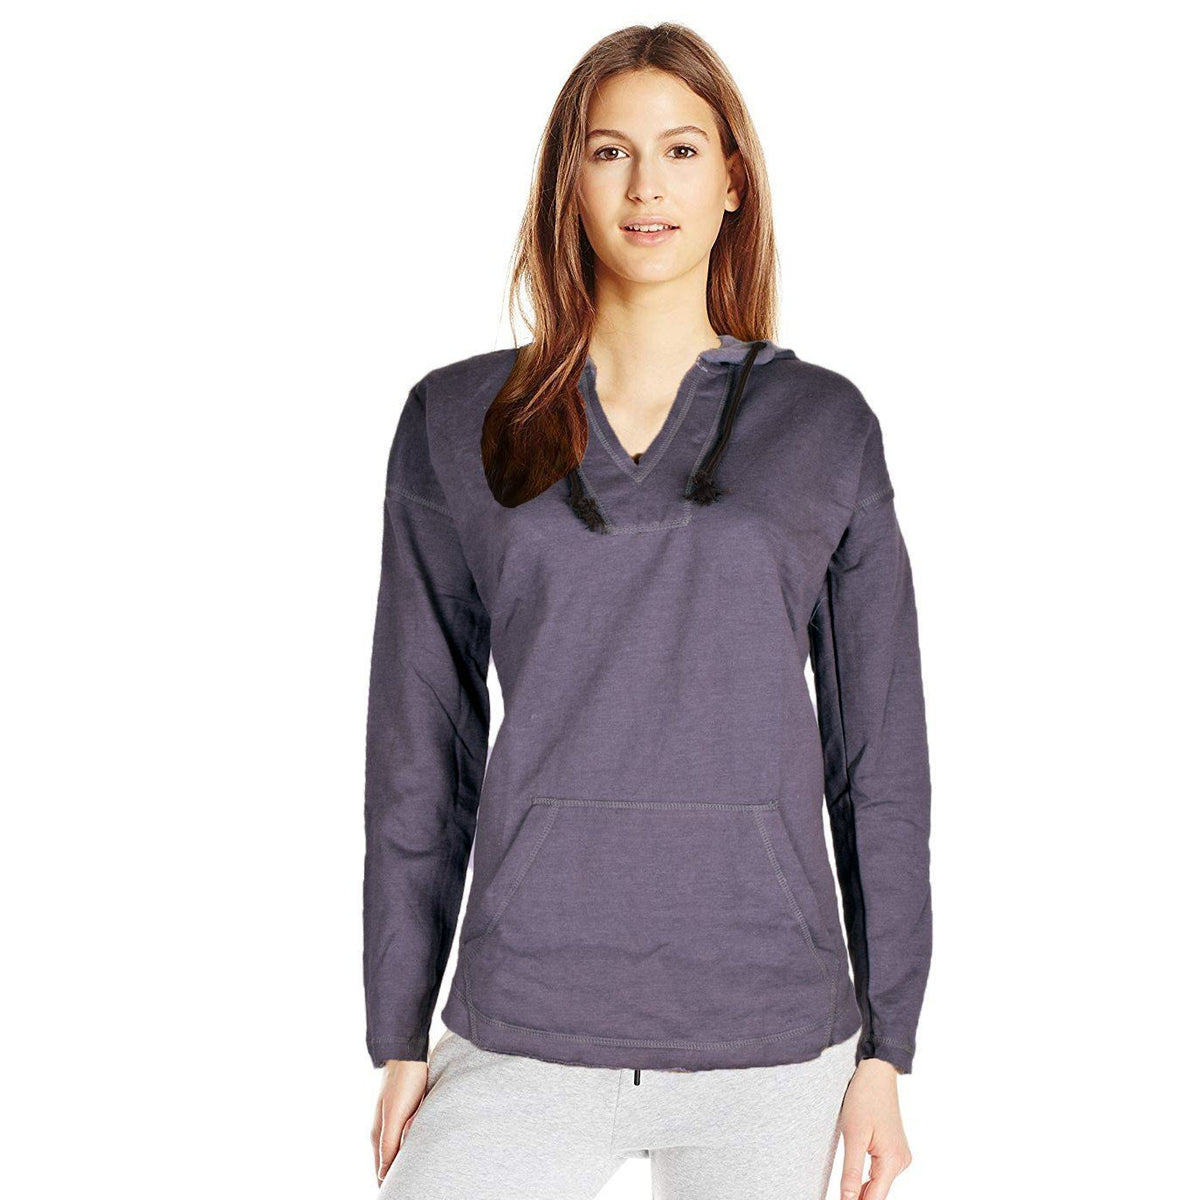 J4W Women's Classic V-Neck Cropped Hoodie Women's Pullover Hoodie SRK Jeans Marl S